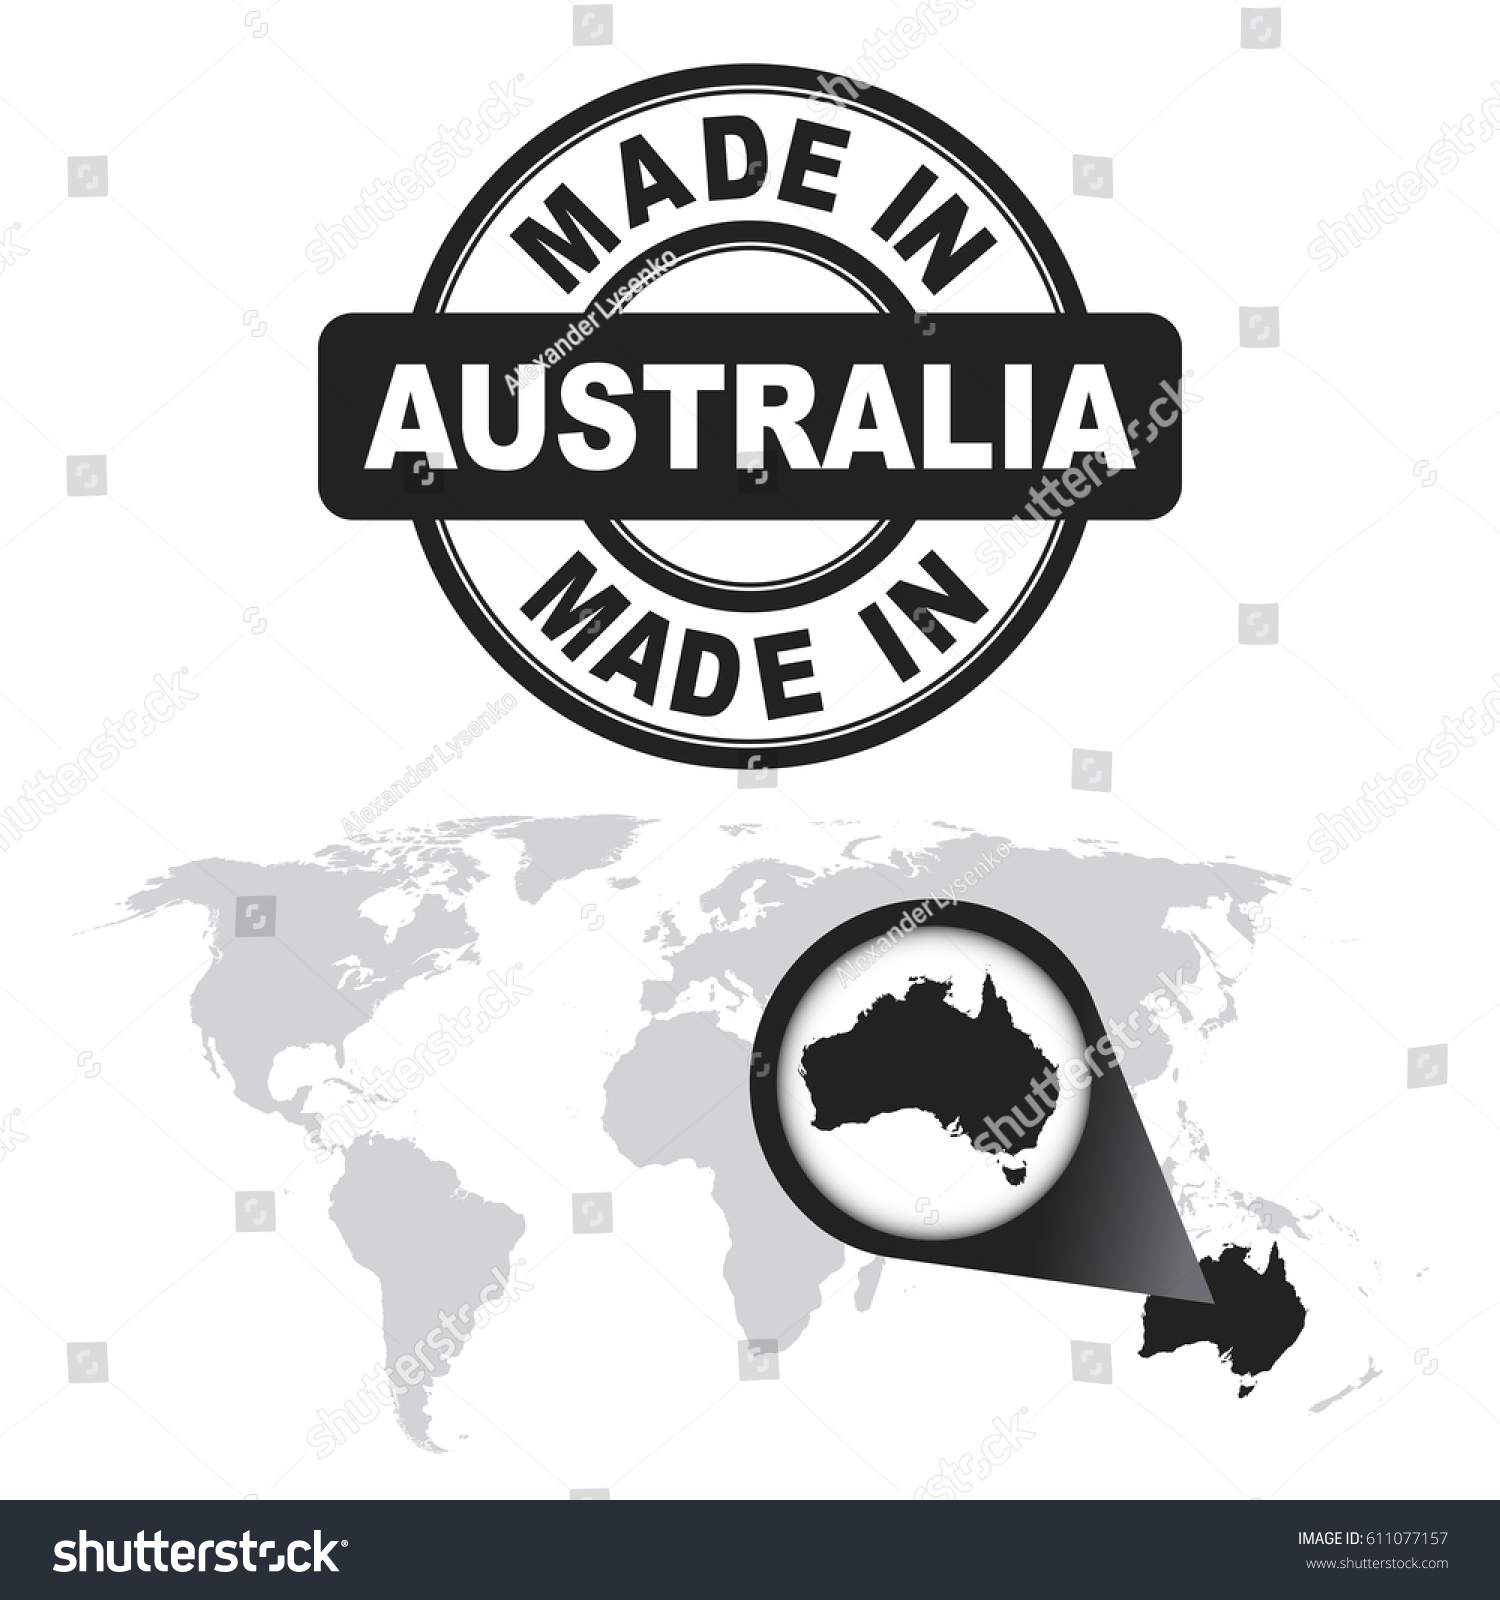 Made australia stamp world map zoom stock vector royalty free made in australia stamp world map with zoom on country vector emblem in flat gumiabroncs Image collections